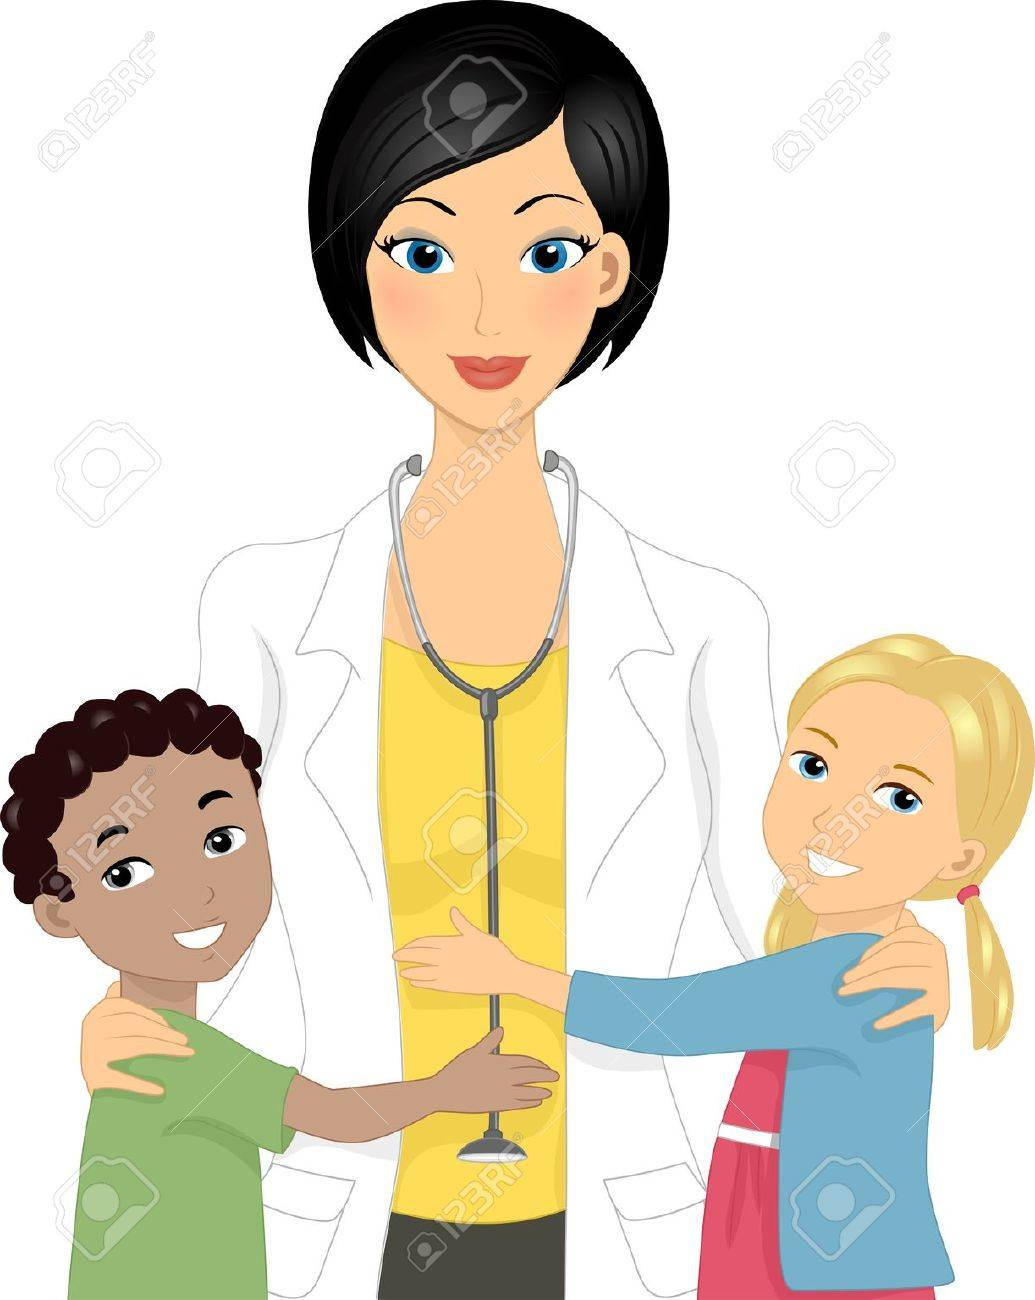 Illustration of a Doctor with Kids Stock Illustration - 11330168